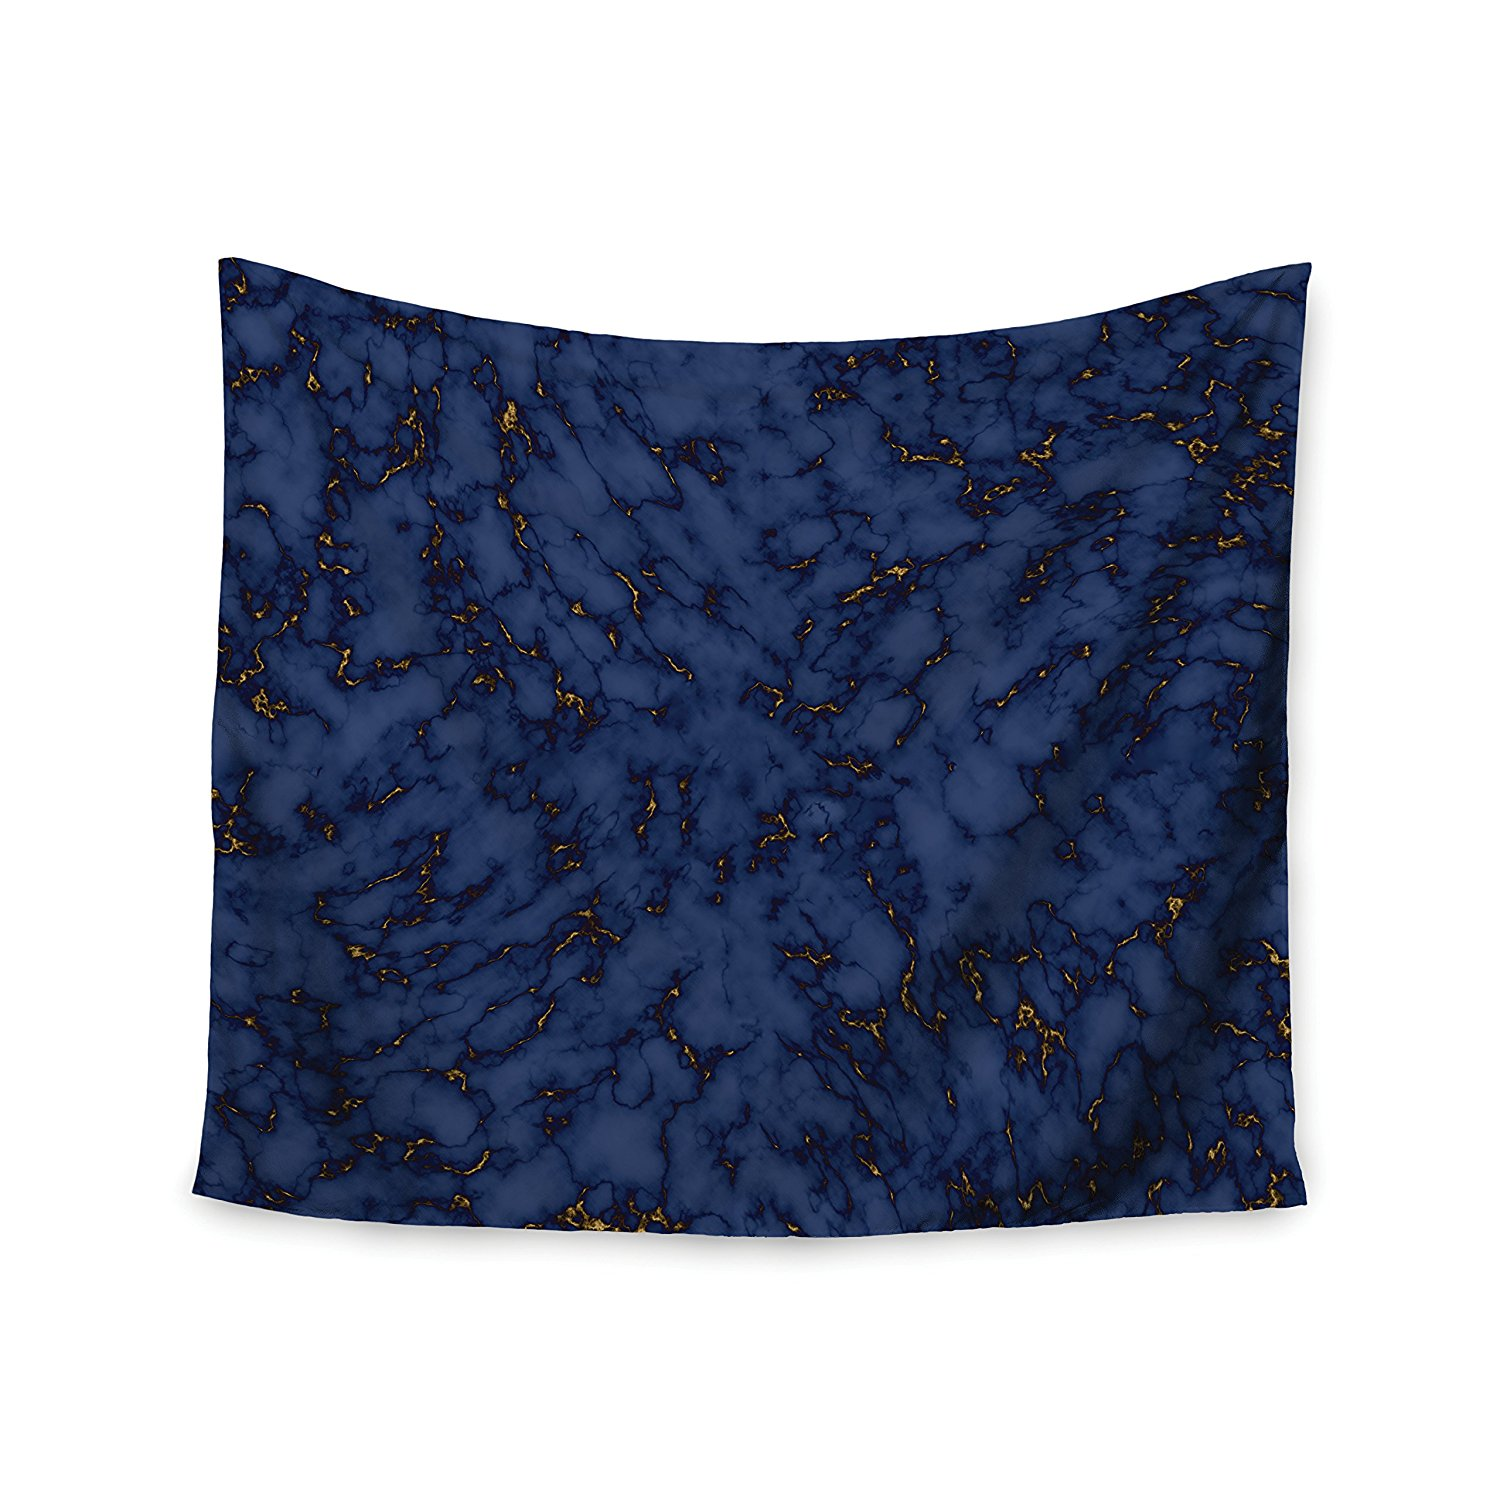 """KESS InHouse Will Wild """"Blue & Gold Marble"""" Navy Abstract Wall Tapestry, 51"""" X 60"""""""""""